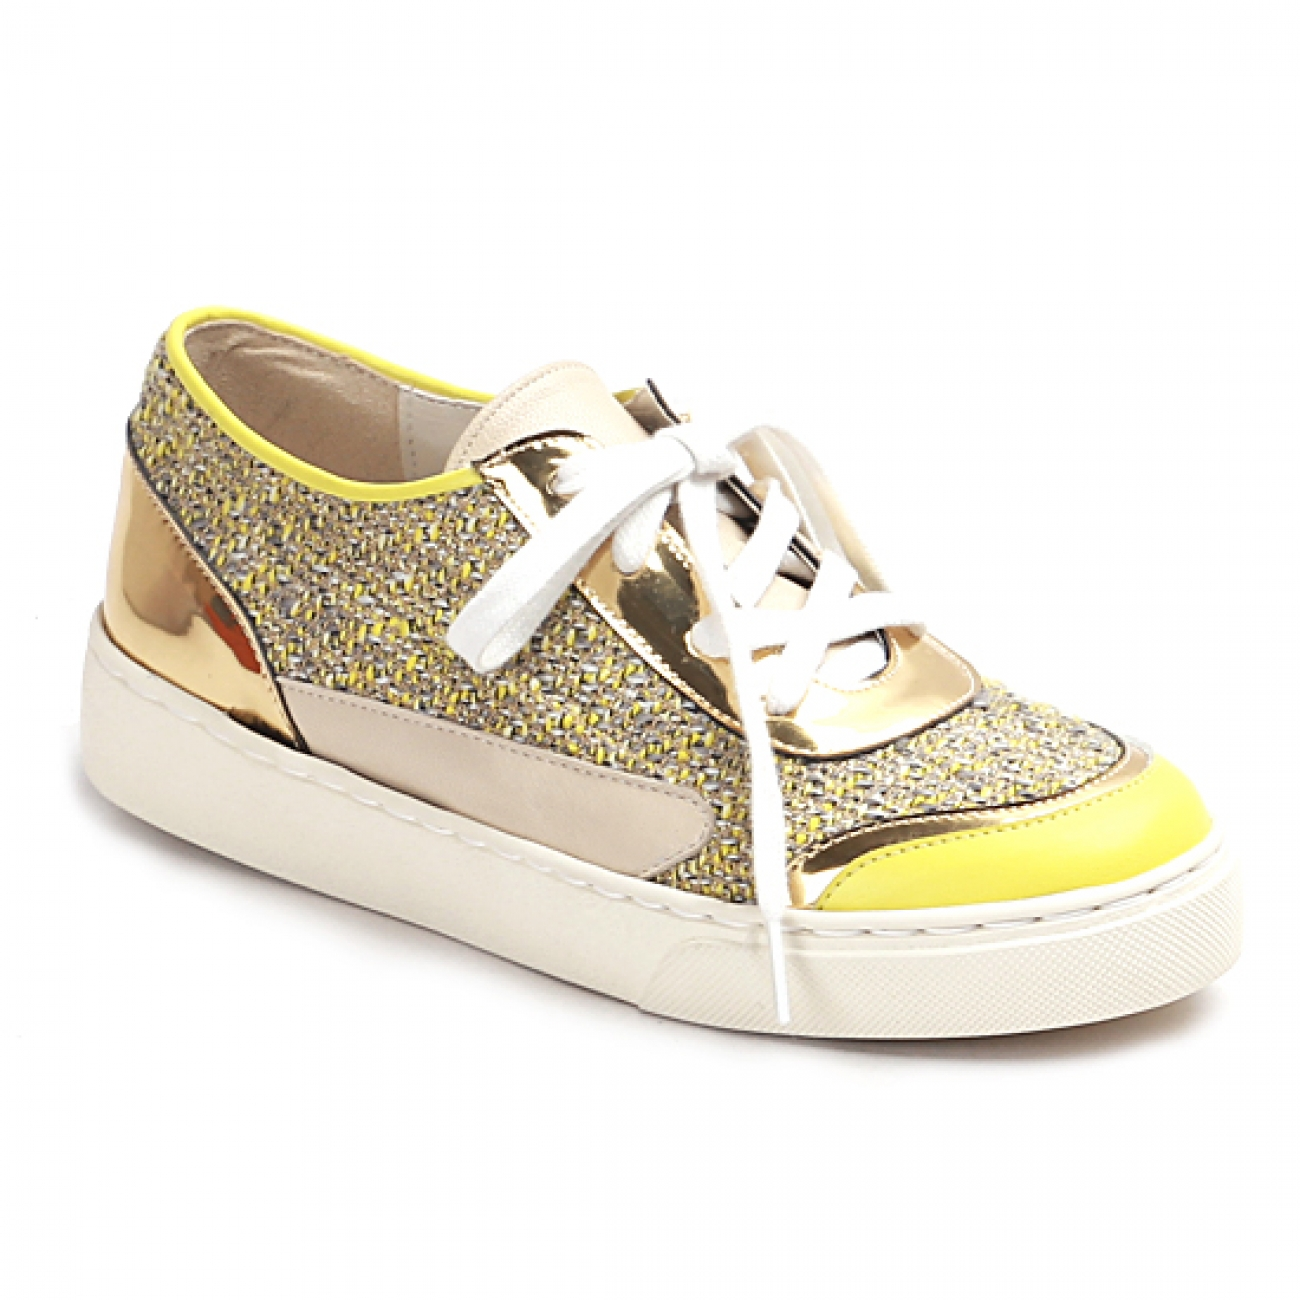 REKKEN Slip On_SPLASH RK048